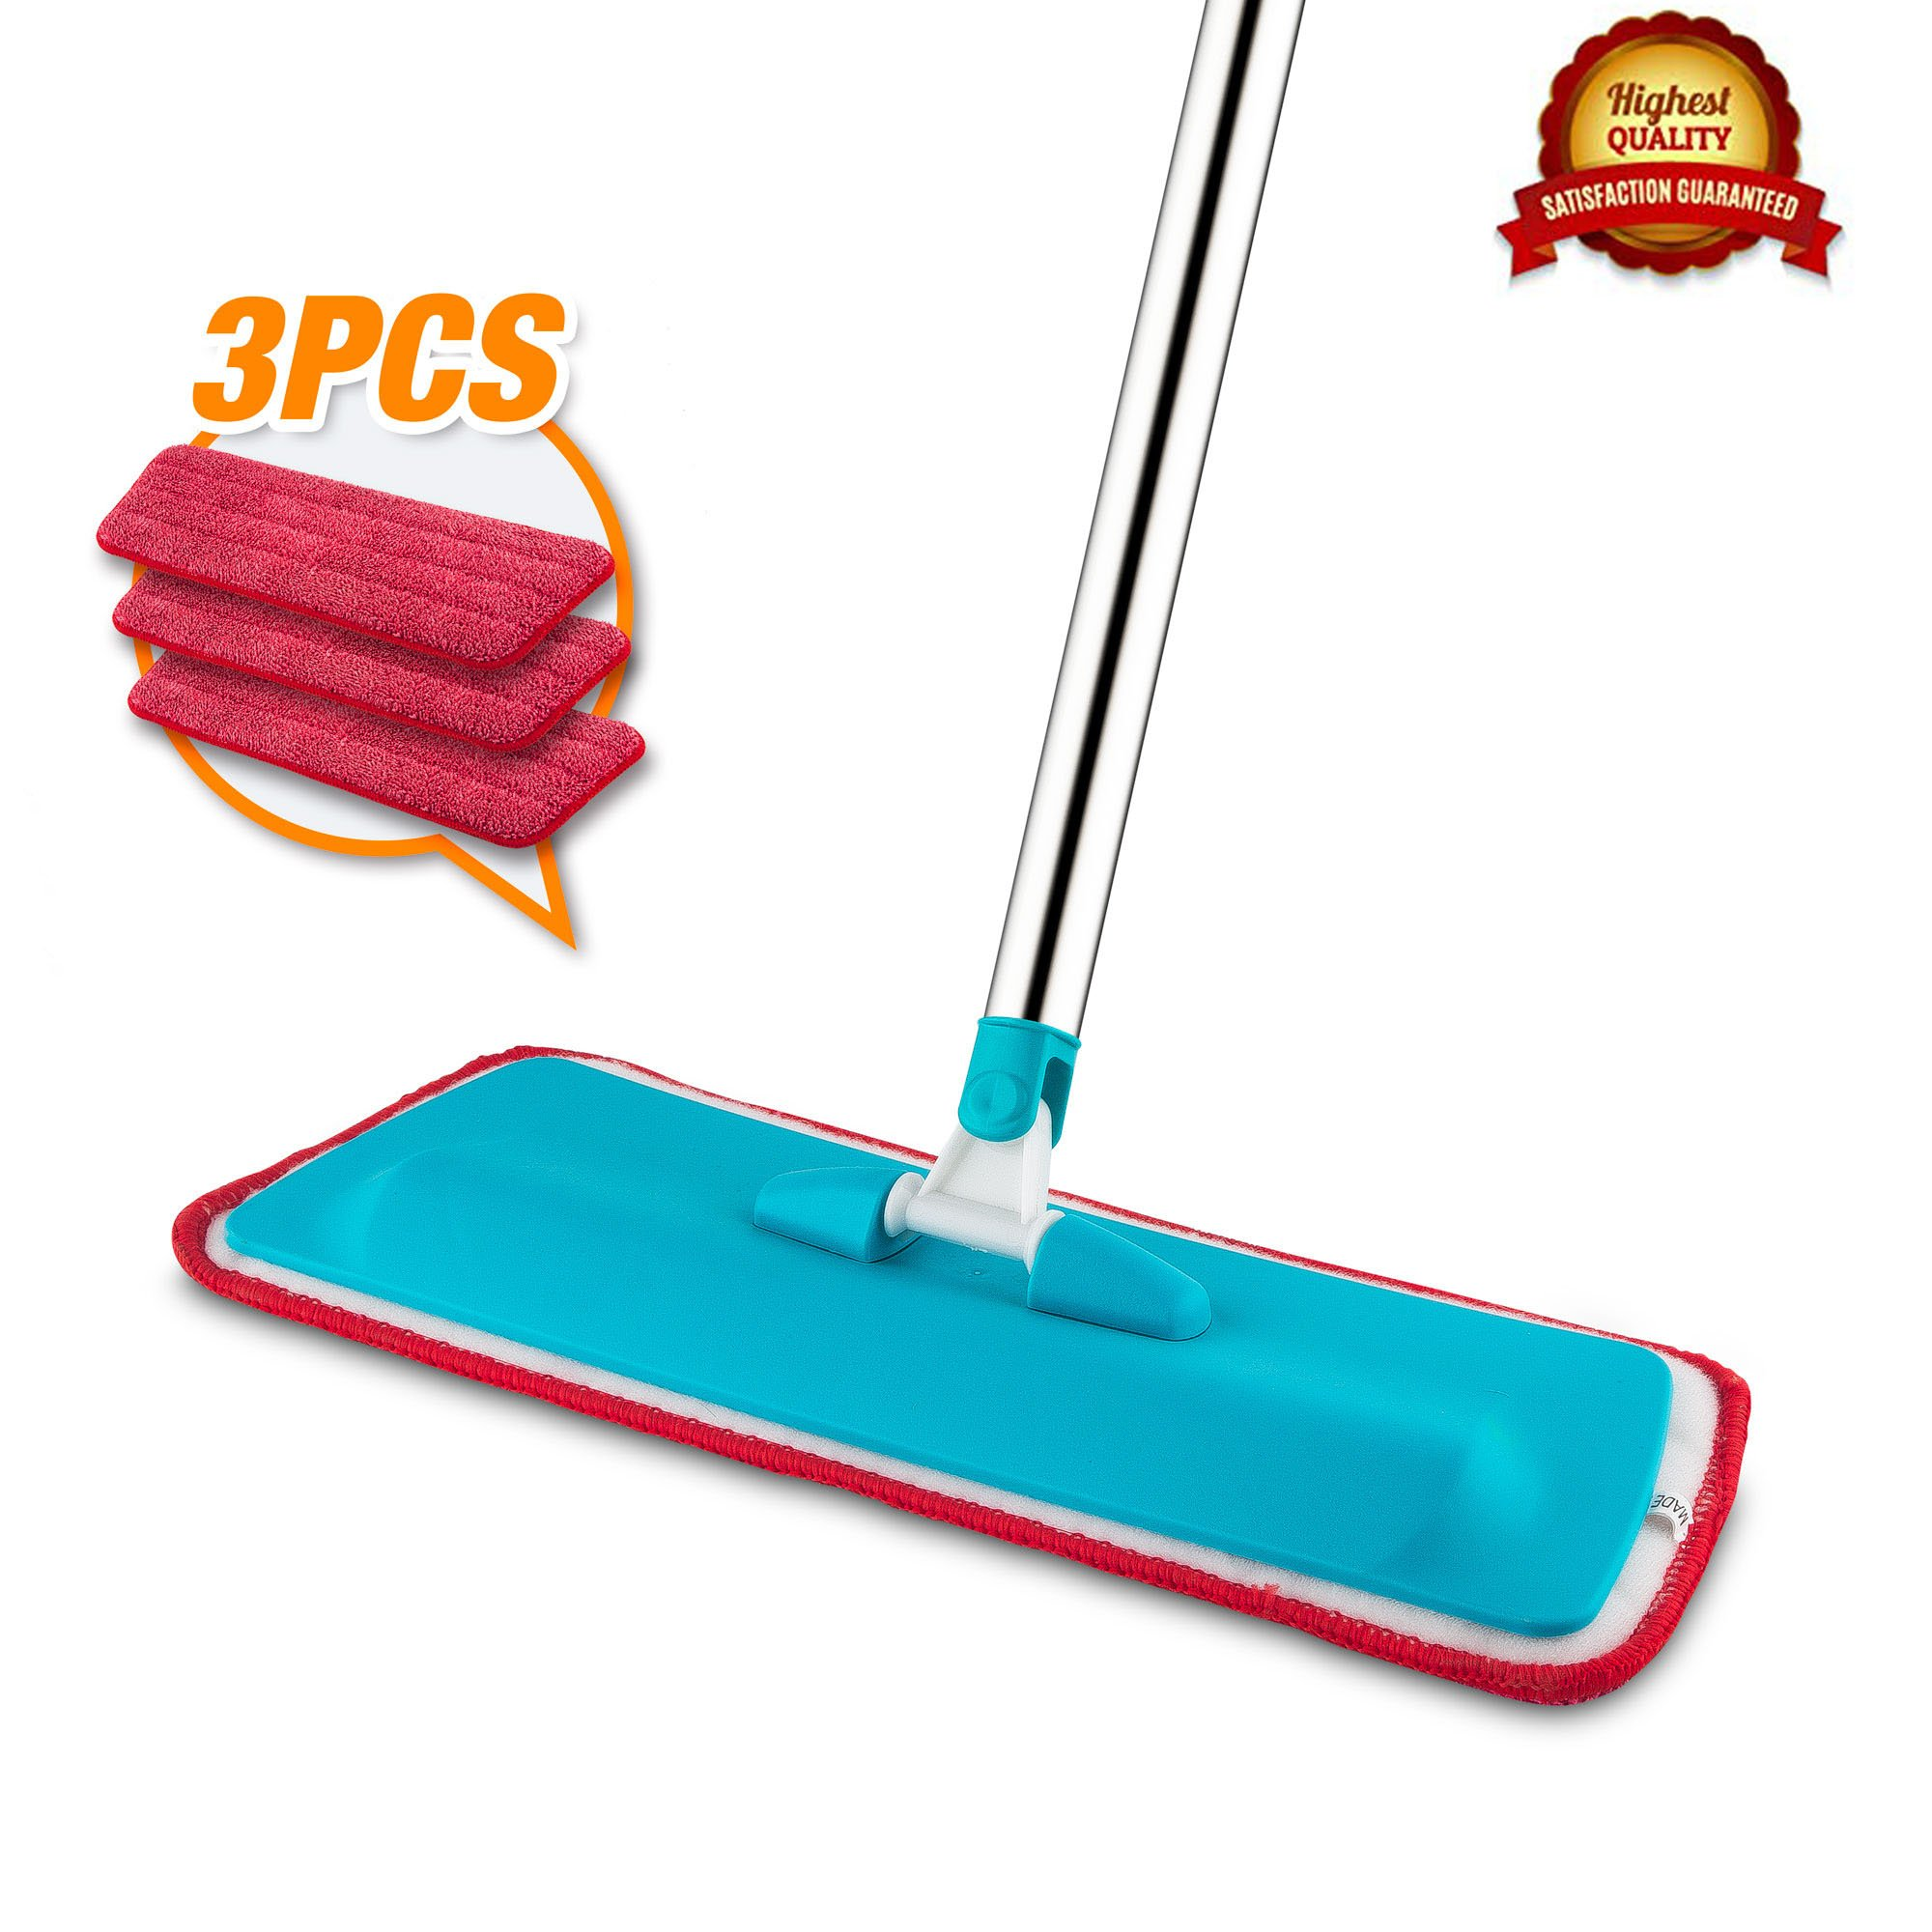 Mop, Microfiber Mop, Hardwood Floor Mop + 3 Replacement Flat Mop Pads, For Wet or Dry Floor Cleaning